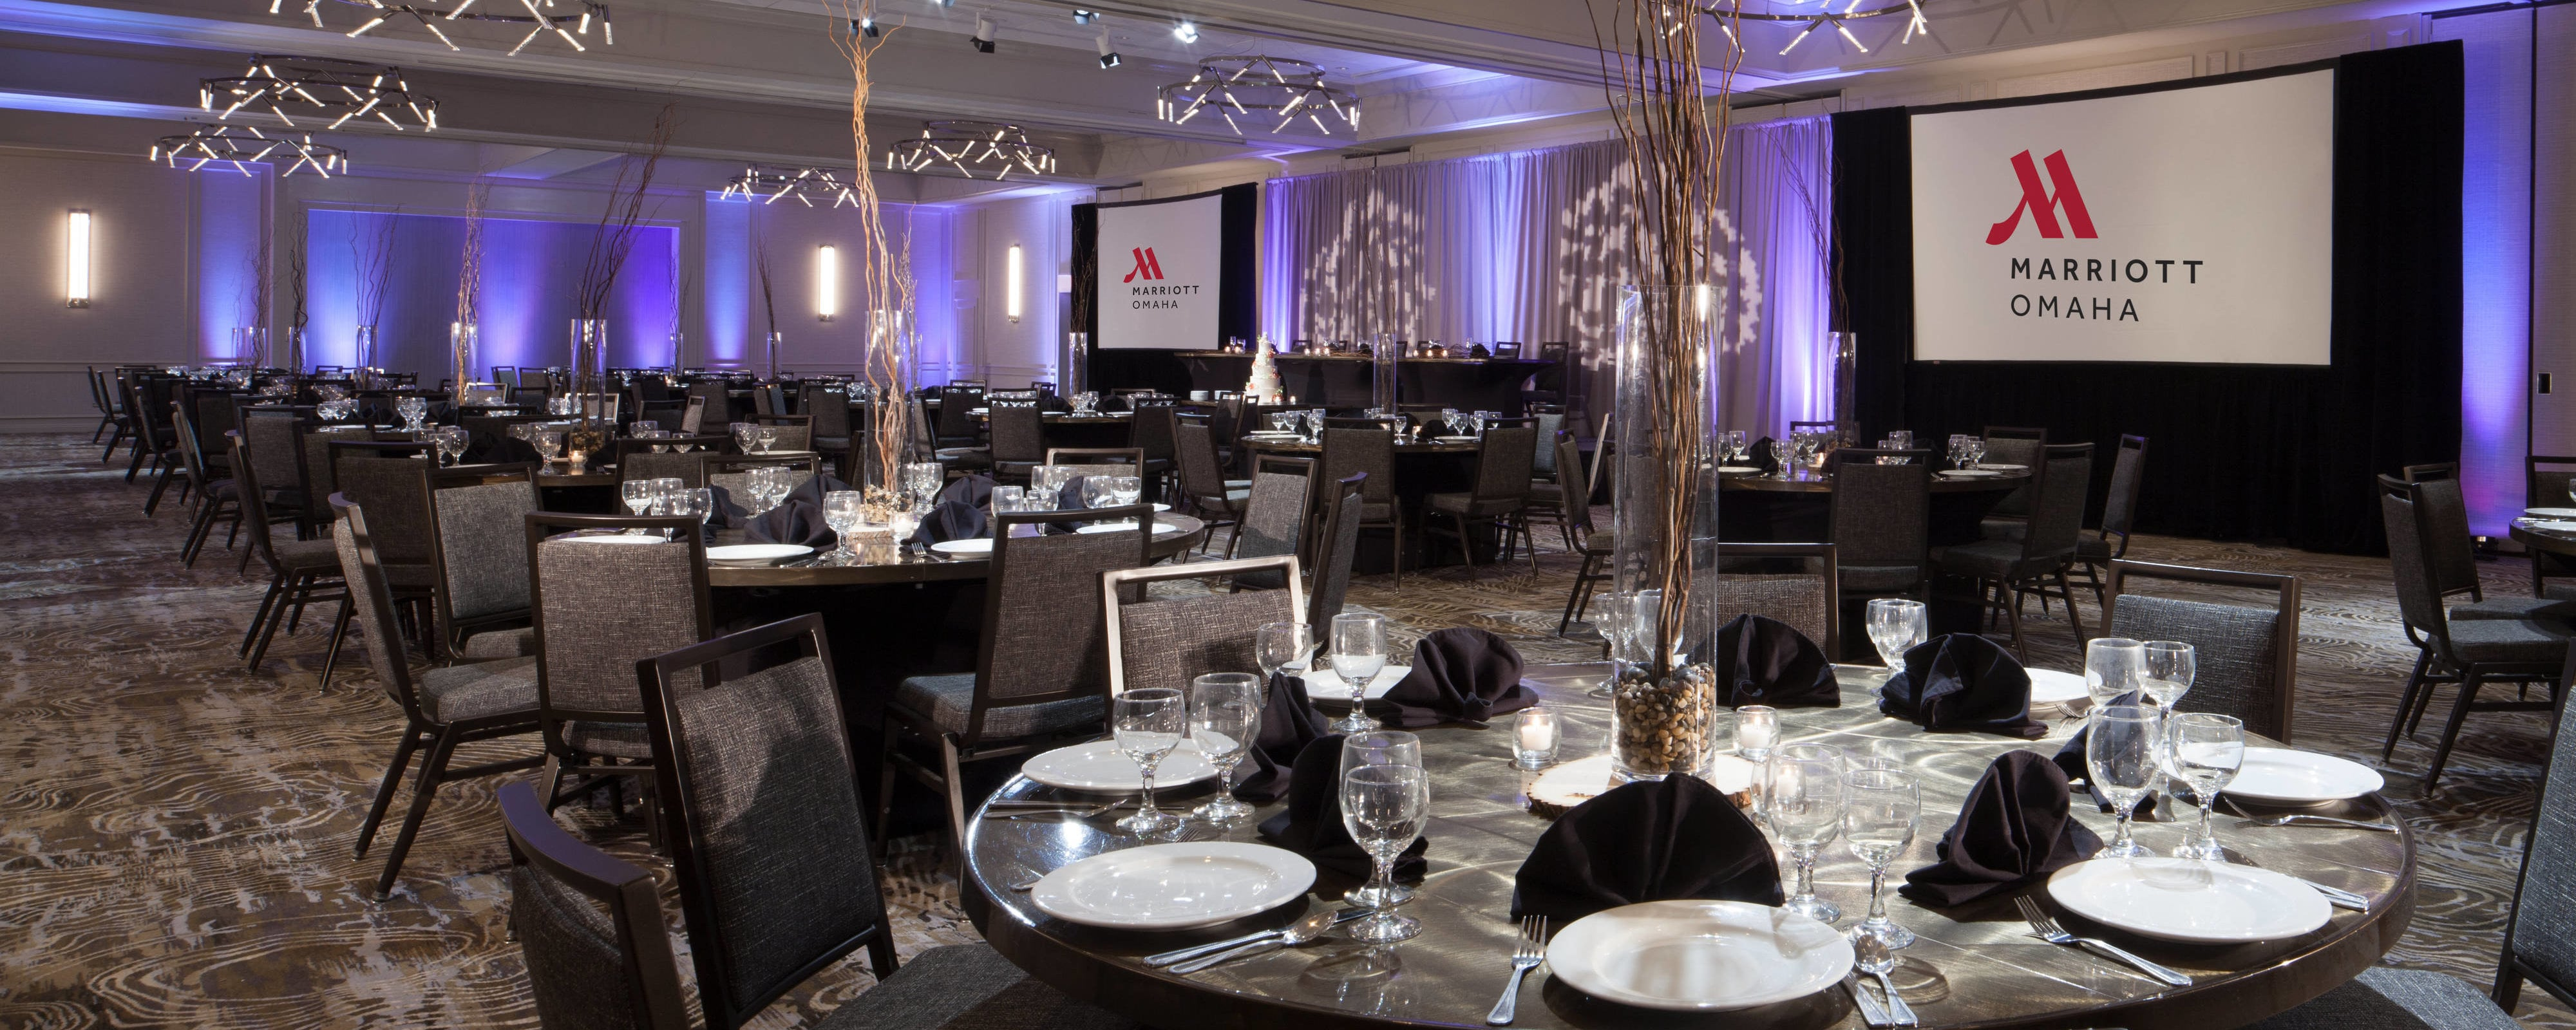 Wedding Venues In Omaha Ne Omaha Marriott